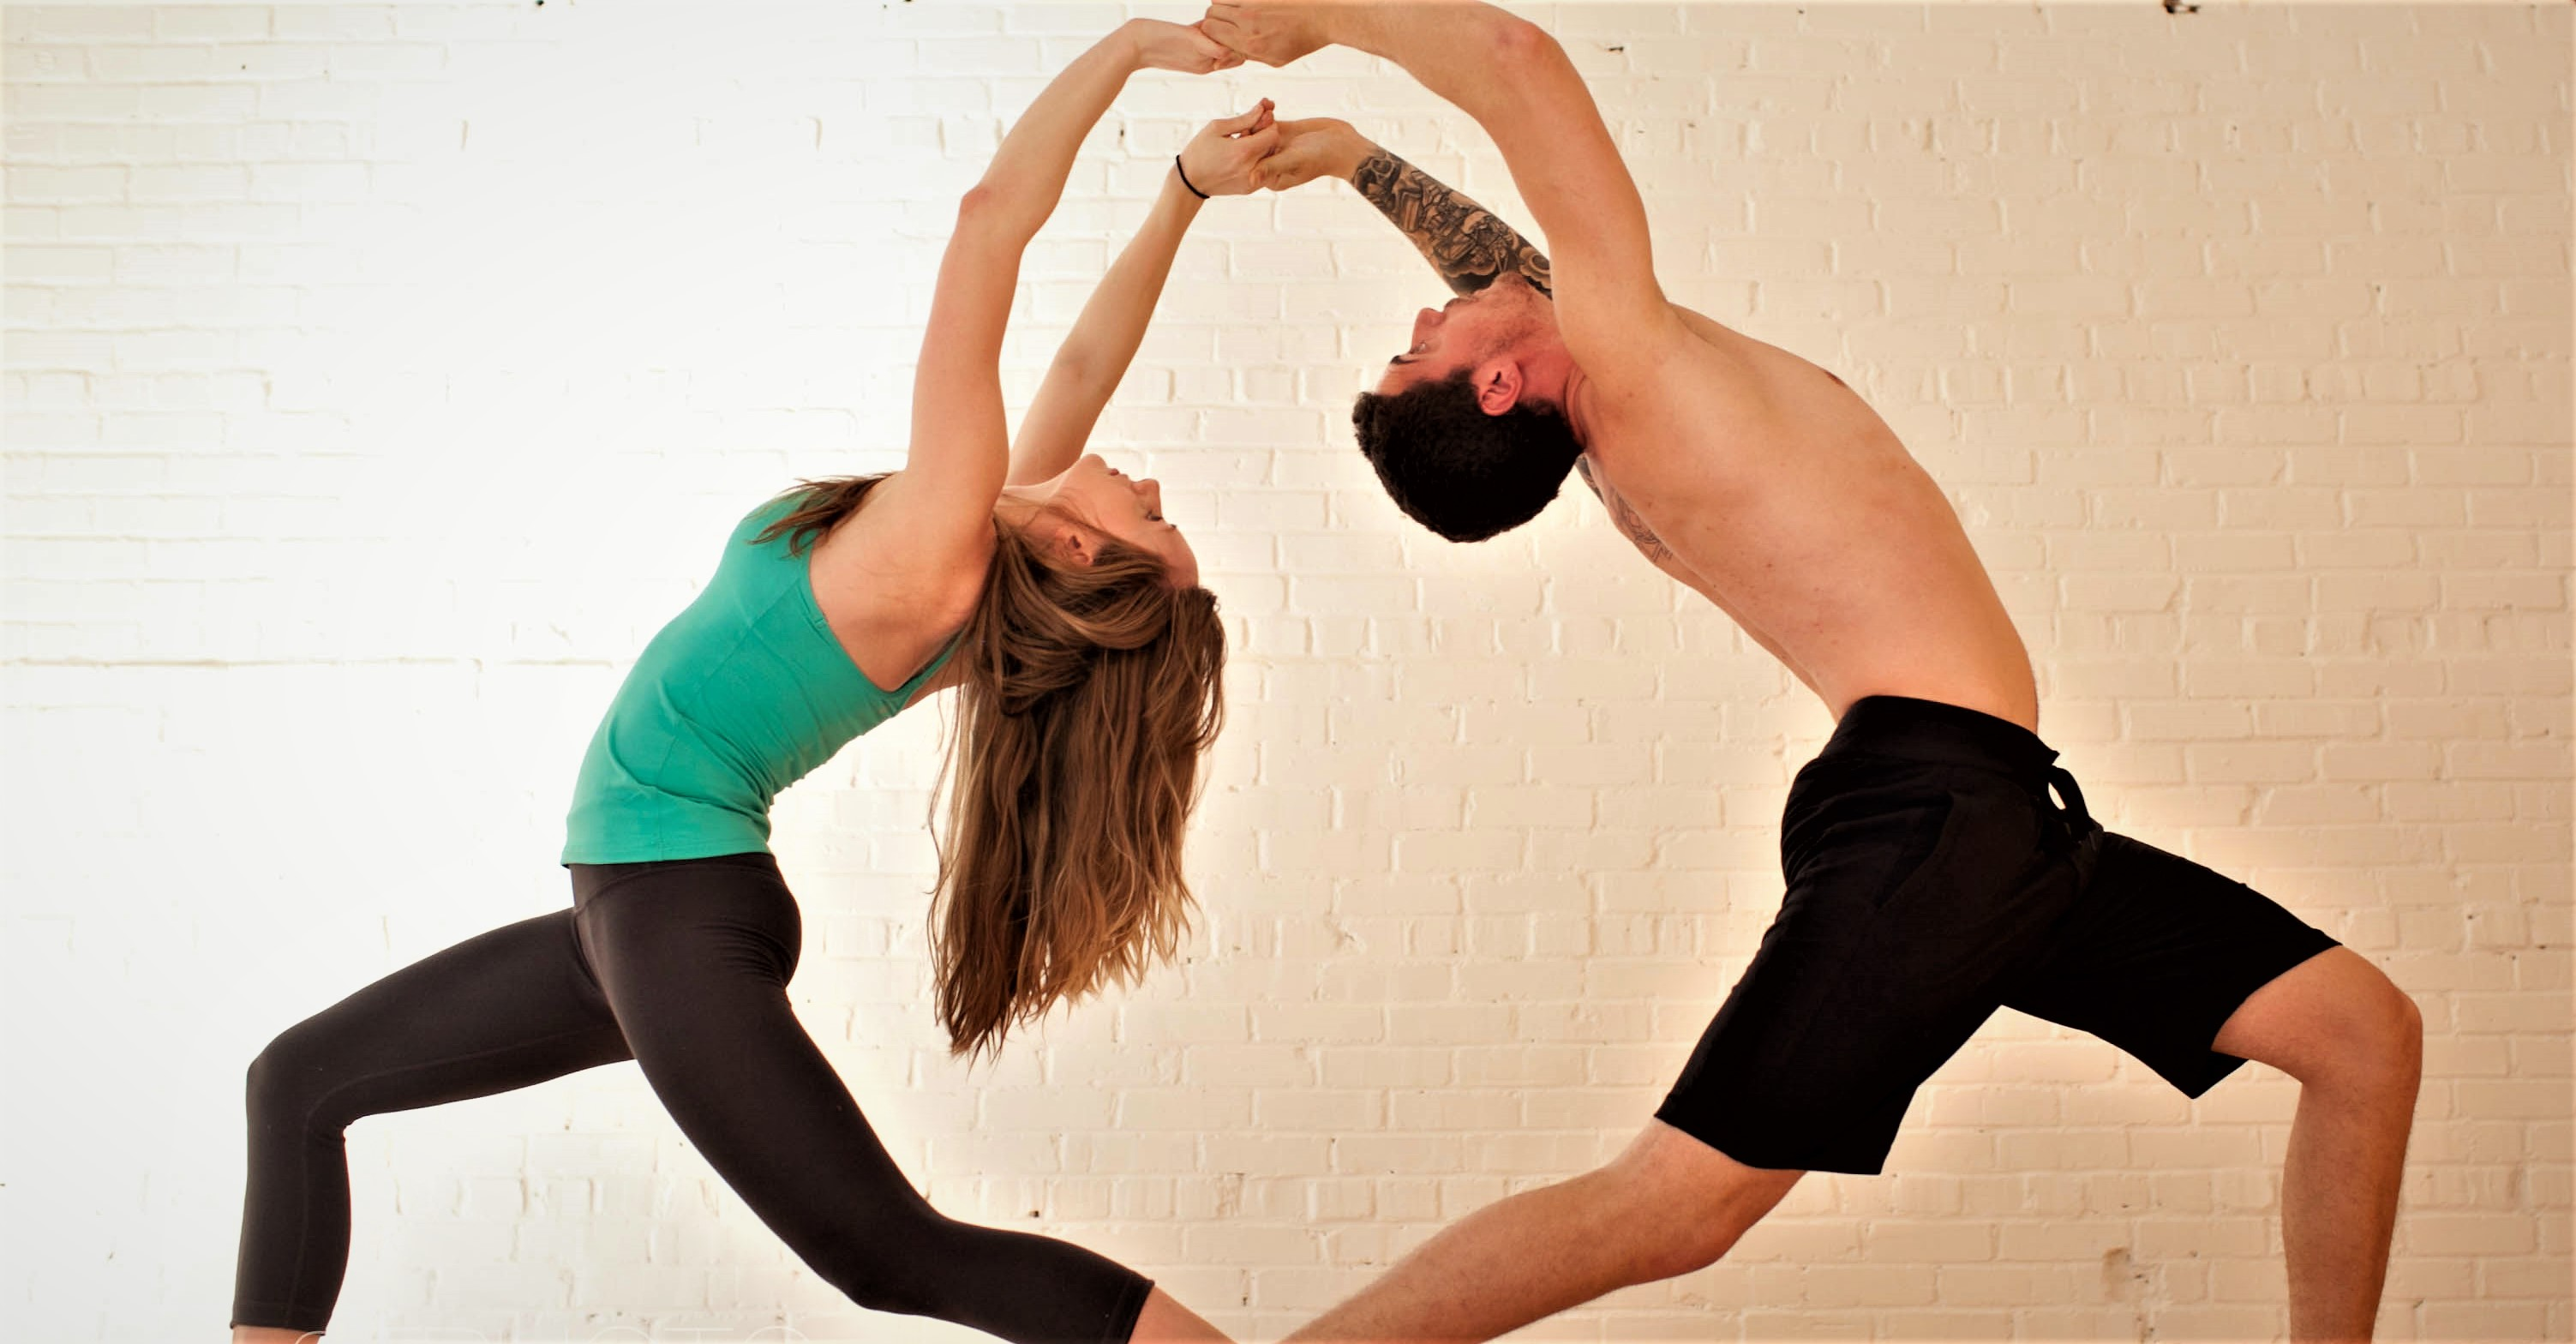 Beginner Yoga Poses for Two | Disrupt Sports